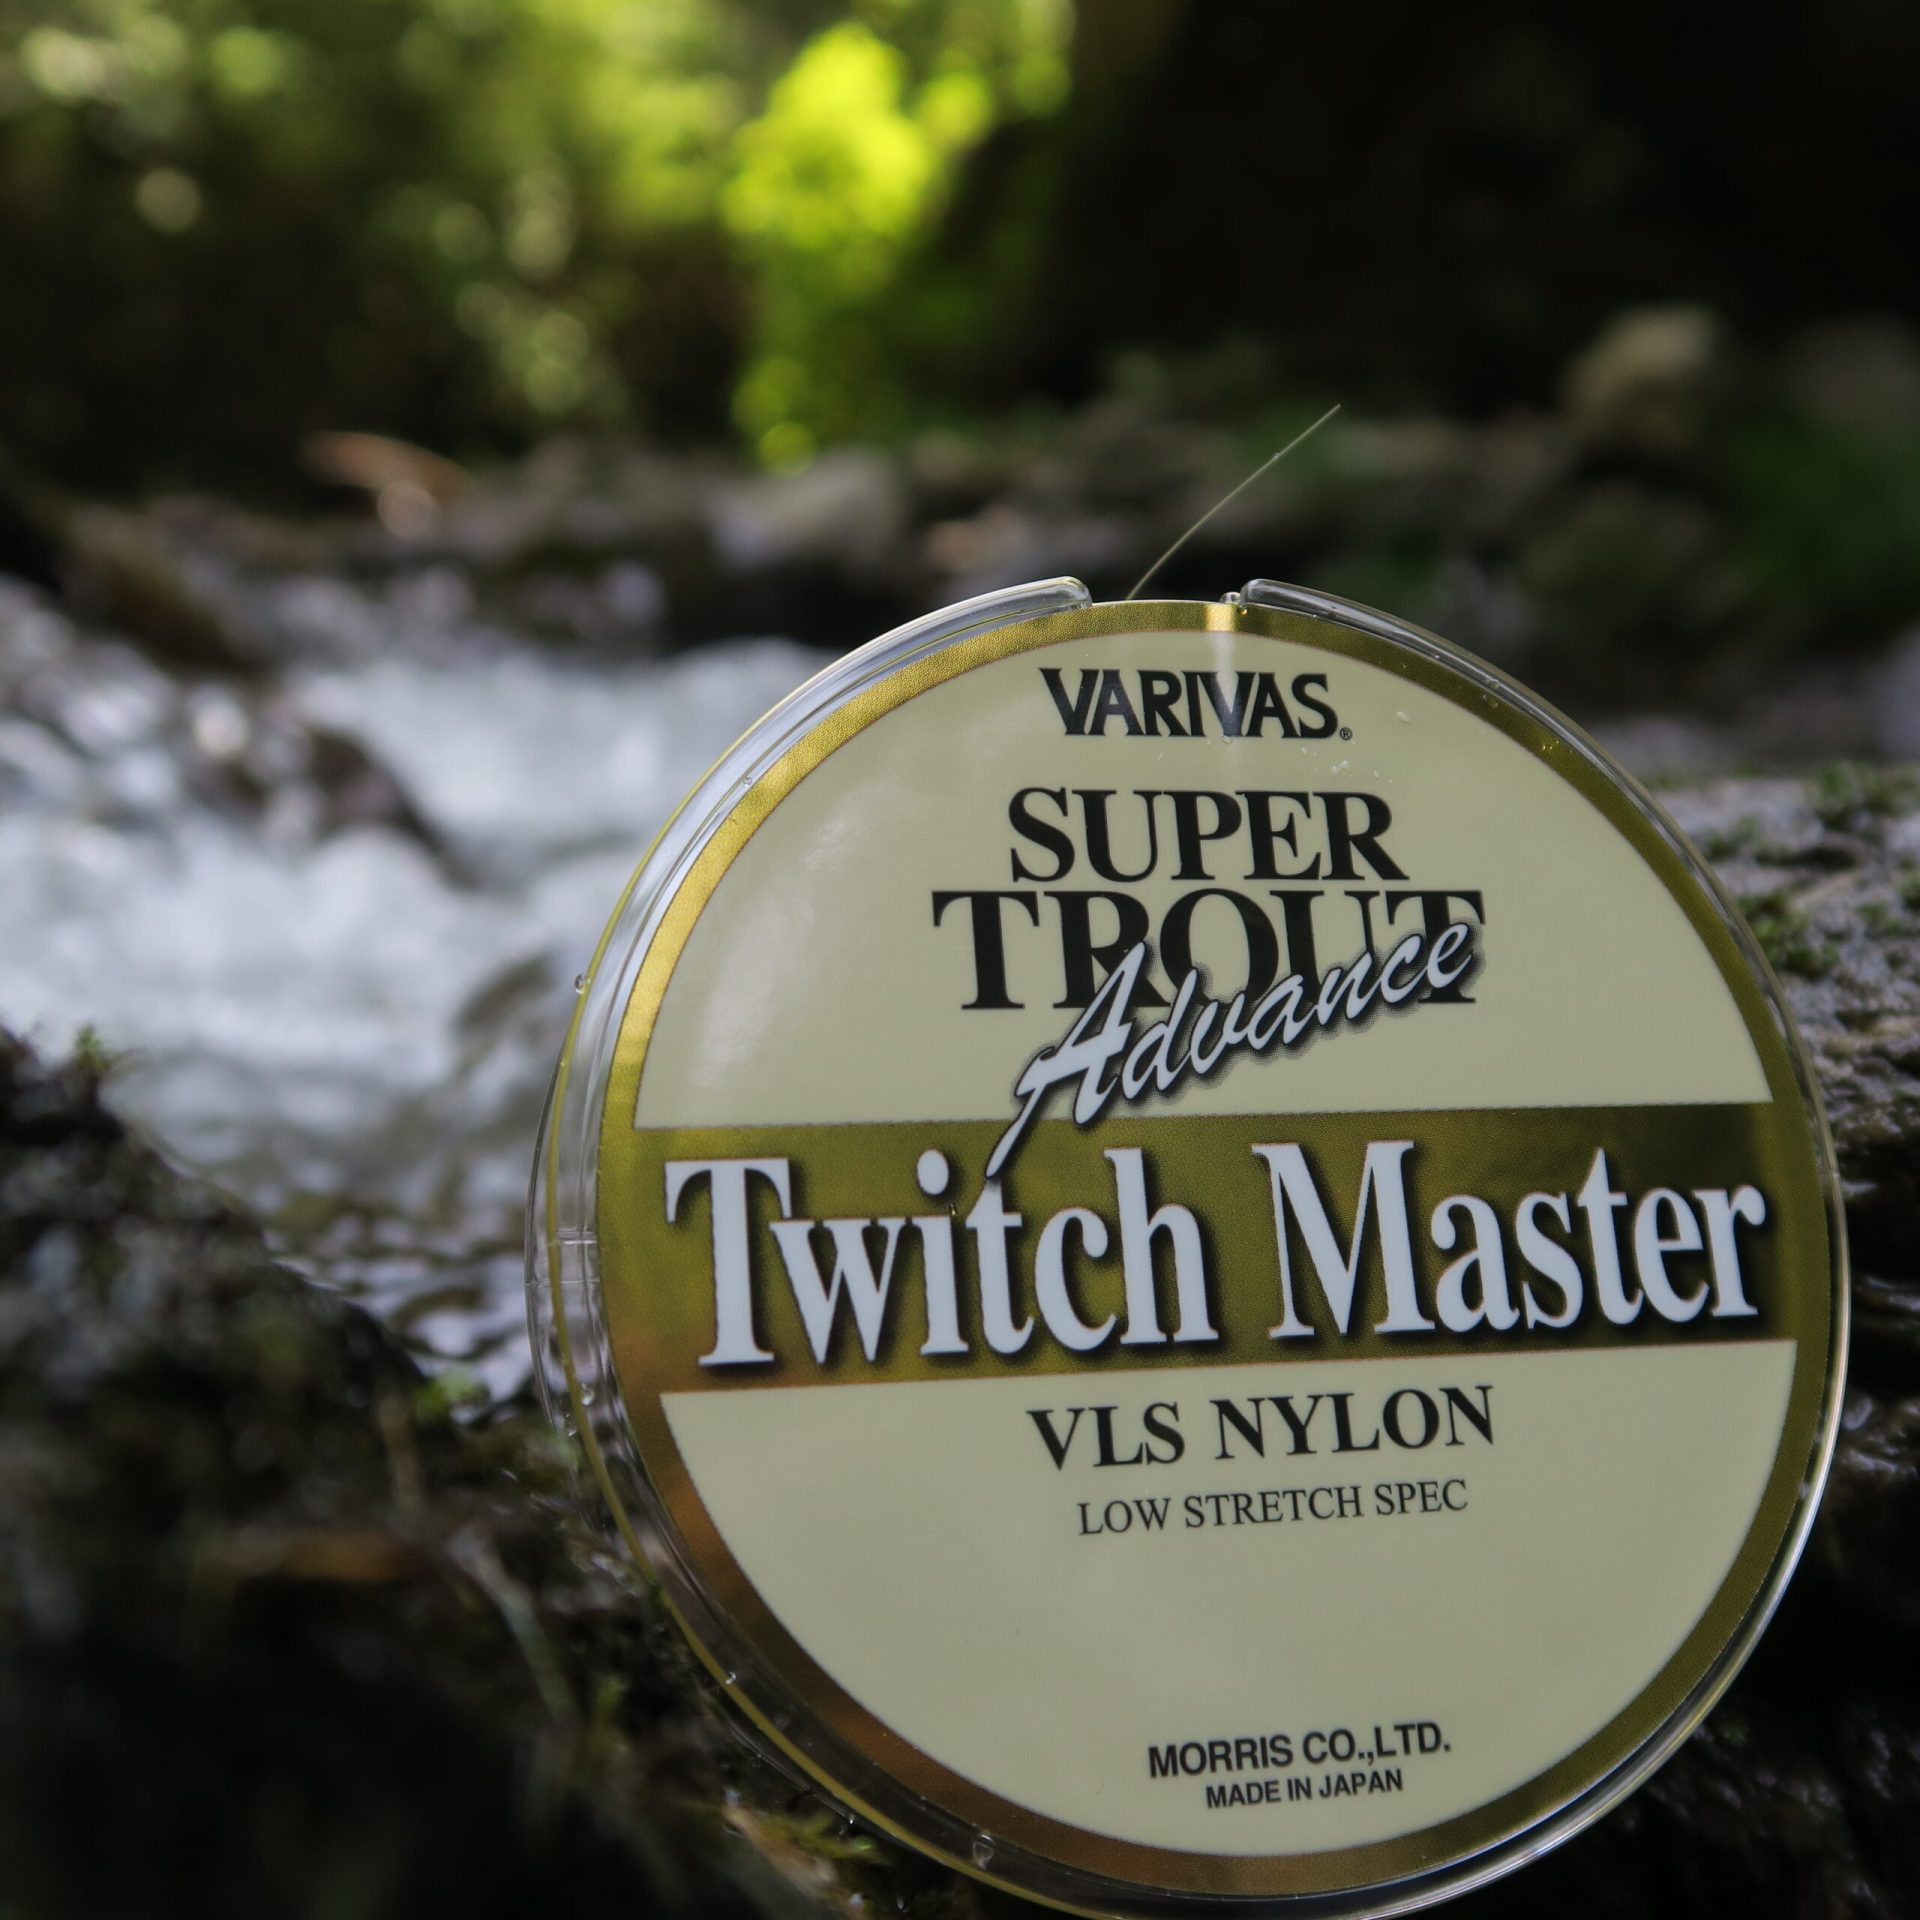 Super Trout Advance Twitch Master VLS Nylon